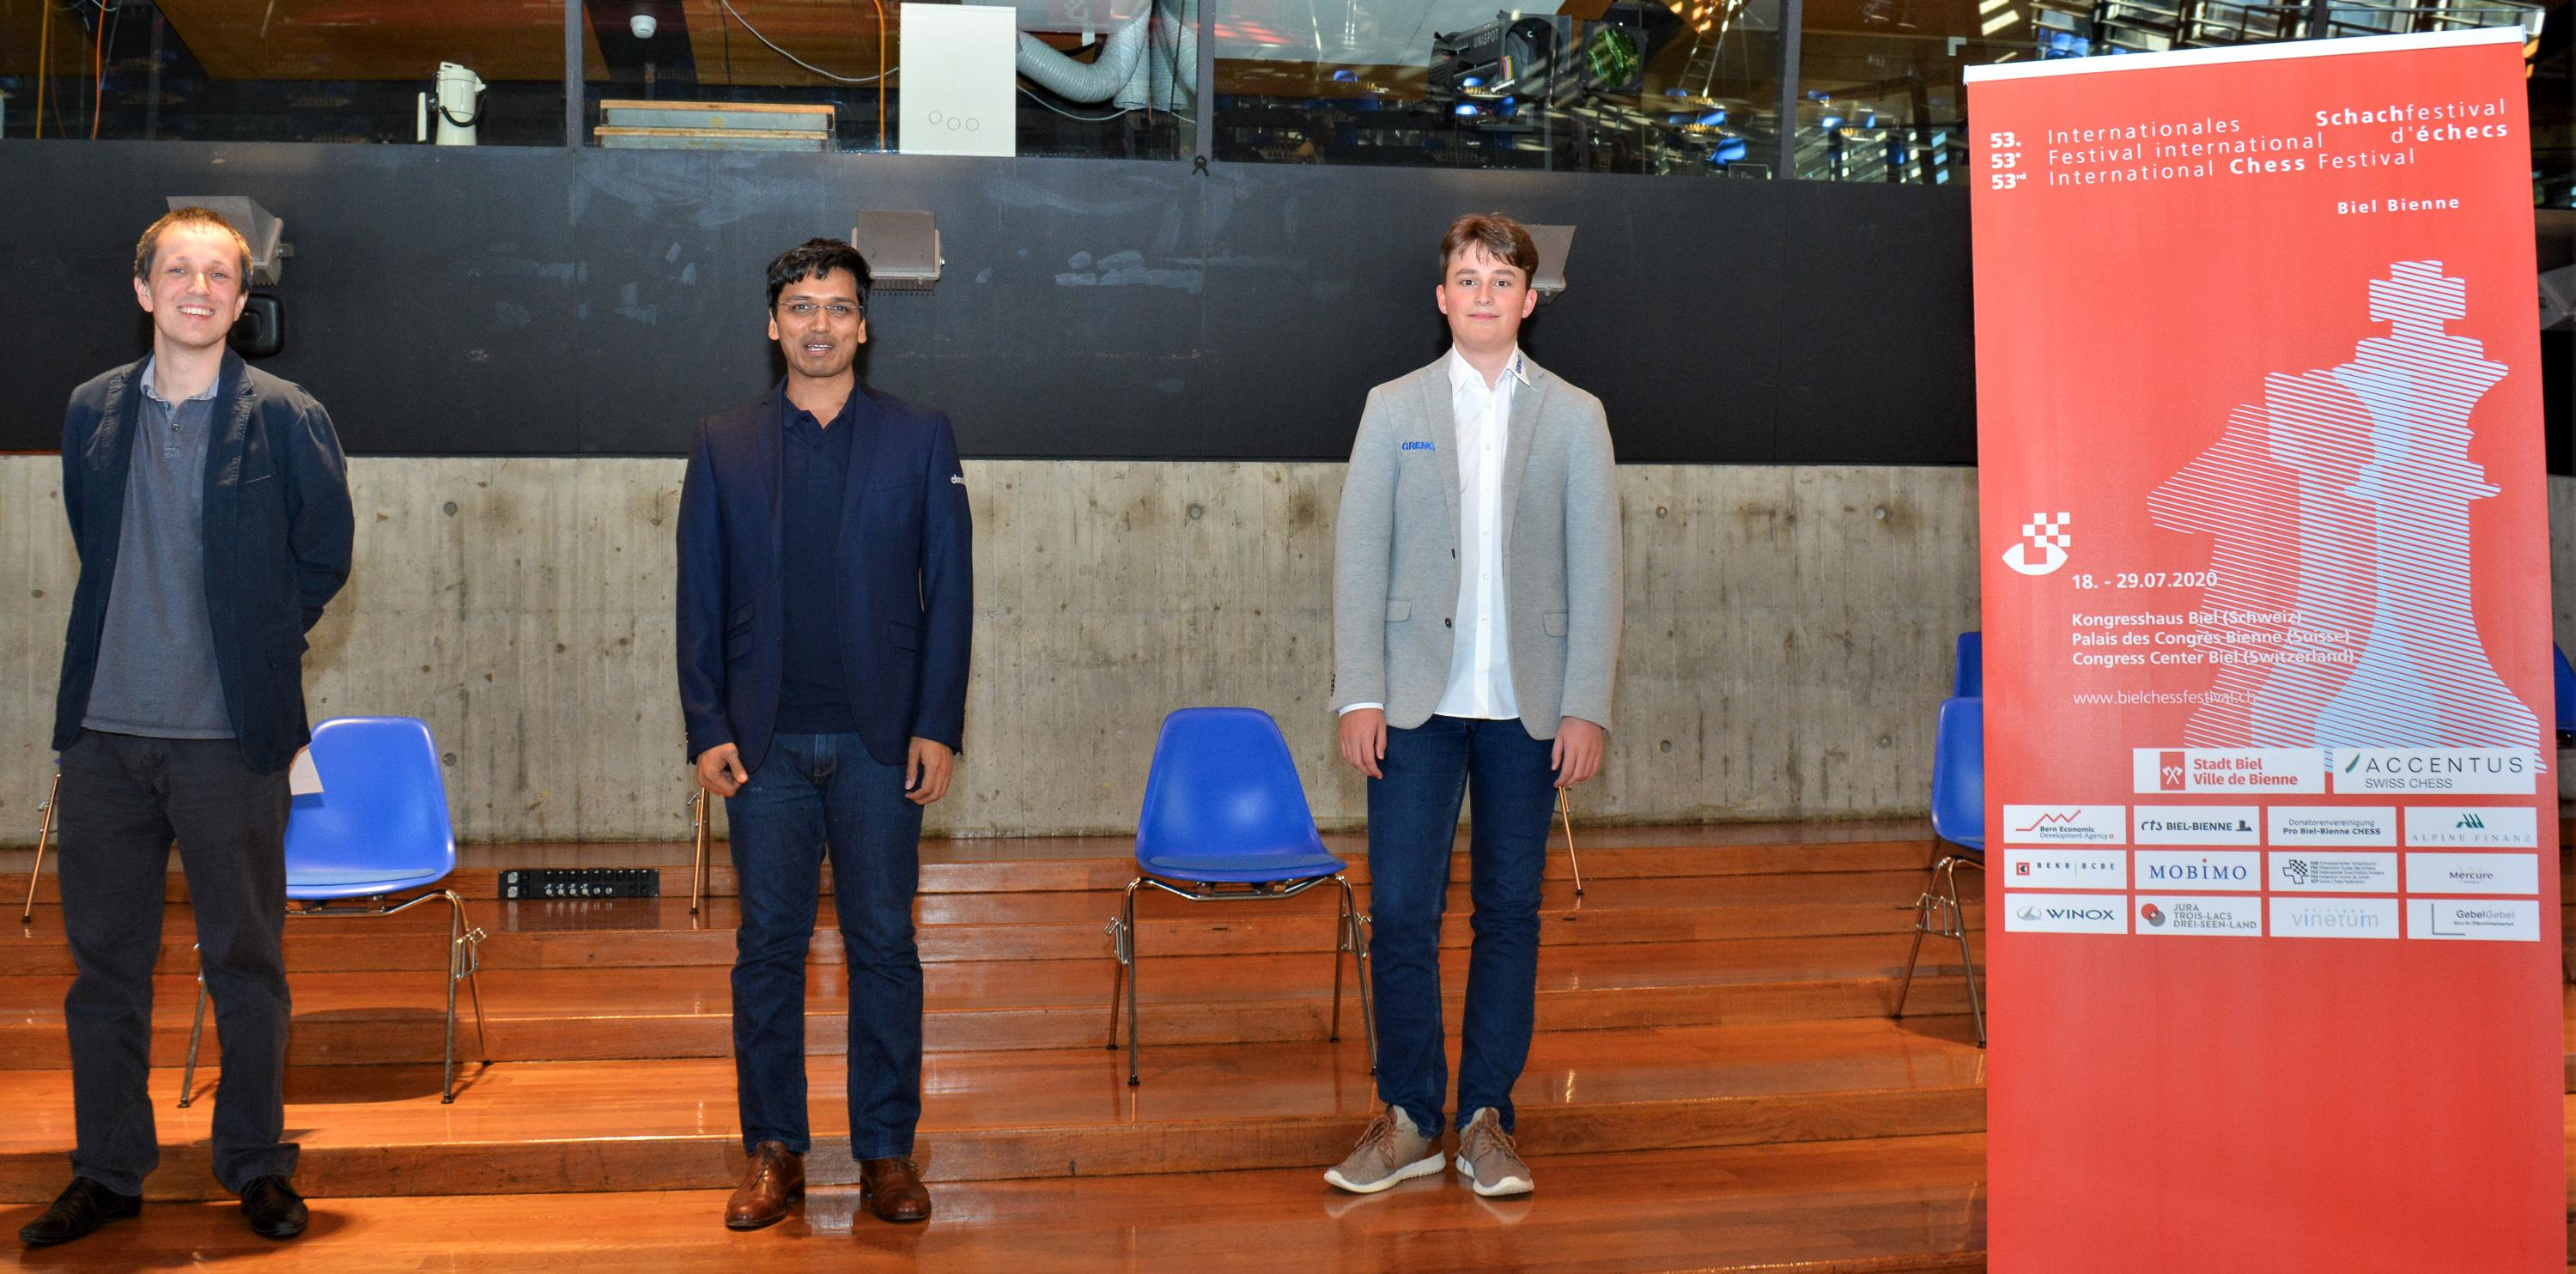 Image The winners of the Accentus Chess960: Pentala Harikrishna (middle), Vincent Keymer (right) and Radoslaw Wojtaszek (left)